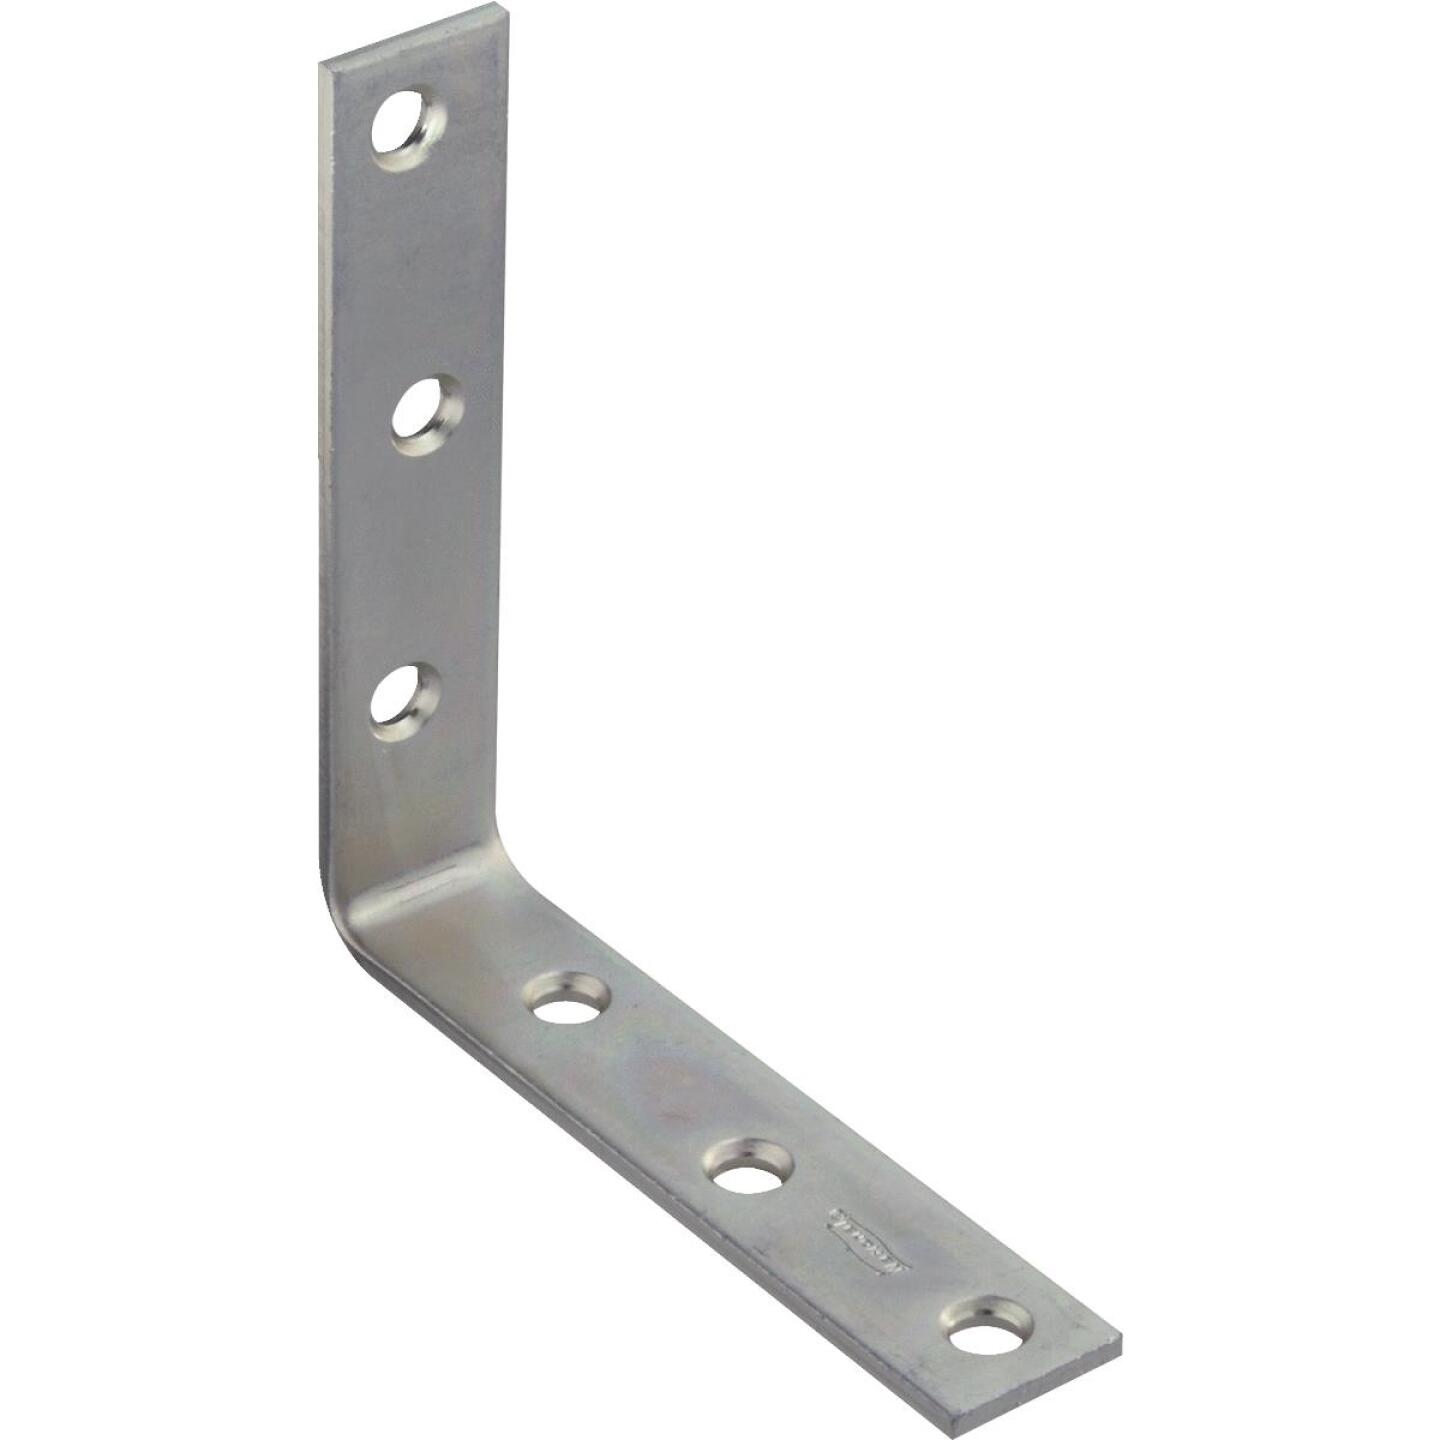 National Catalog 115 5 In. x 1 In. Zinc Corner Brace Image 1